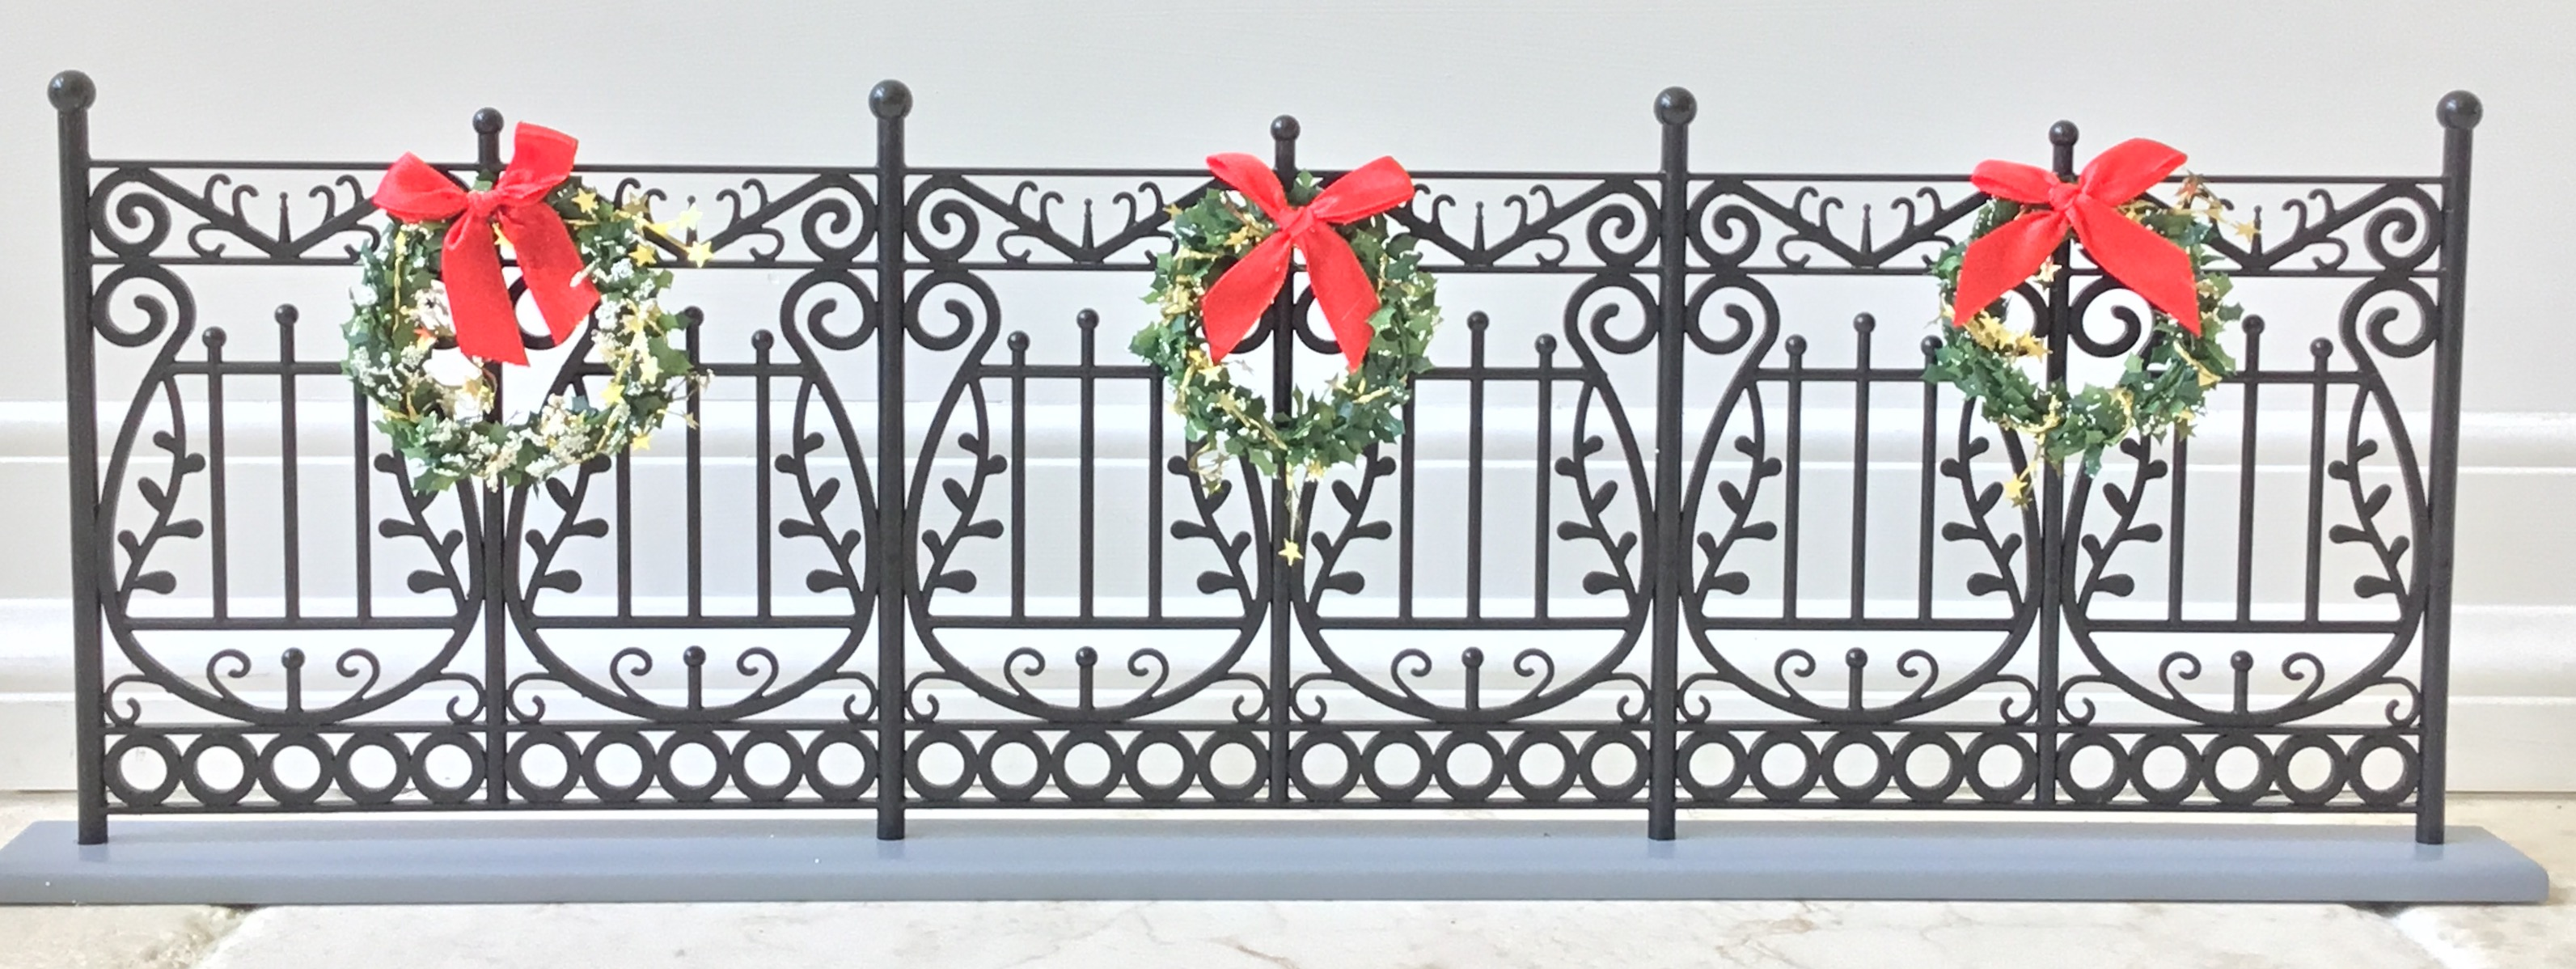 Decorative Fence with Wreaths